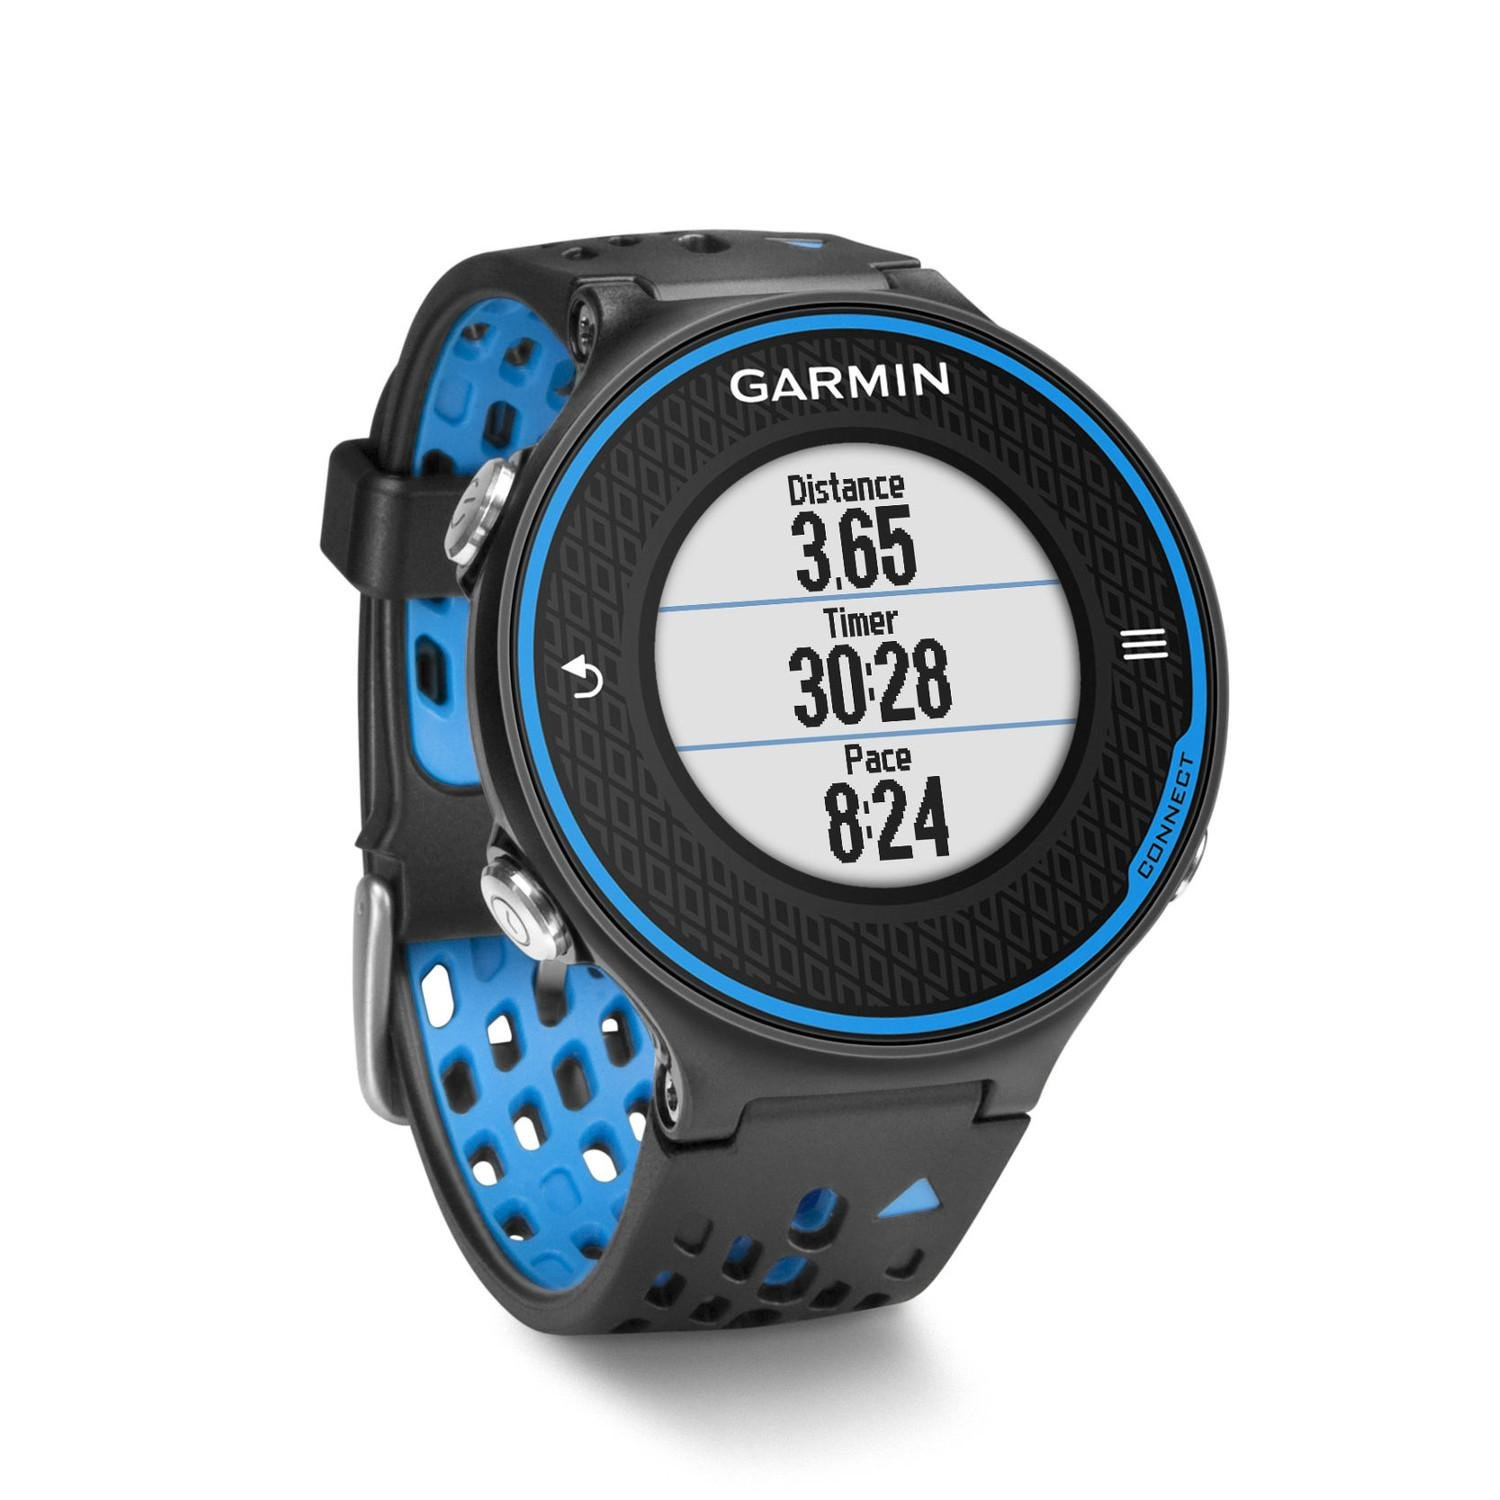 GARMIN Forerunner 620 Watch HRM Bundle